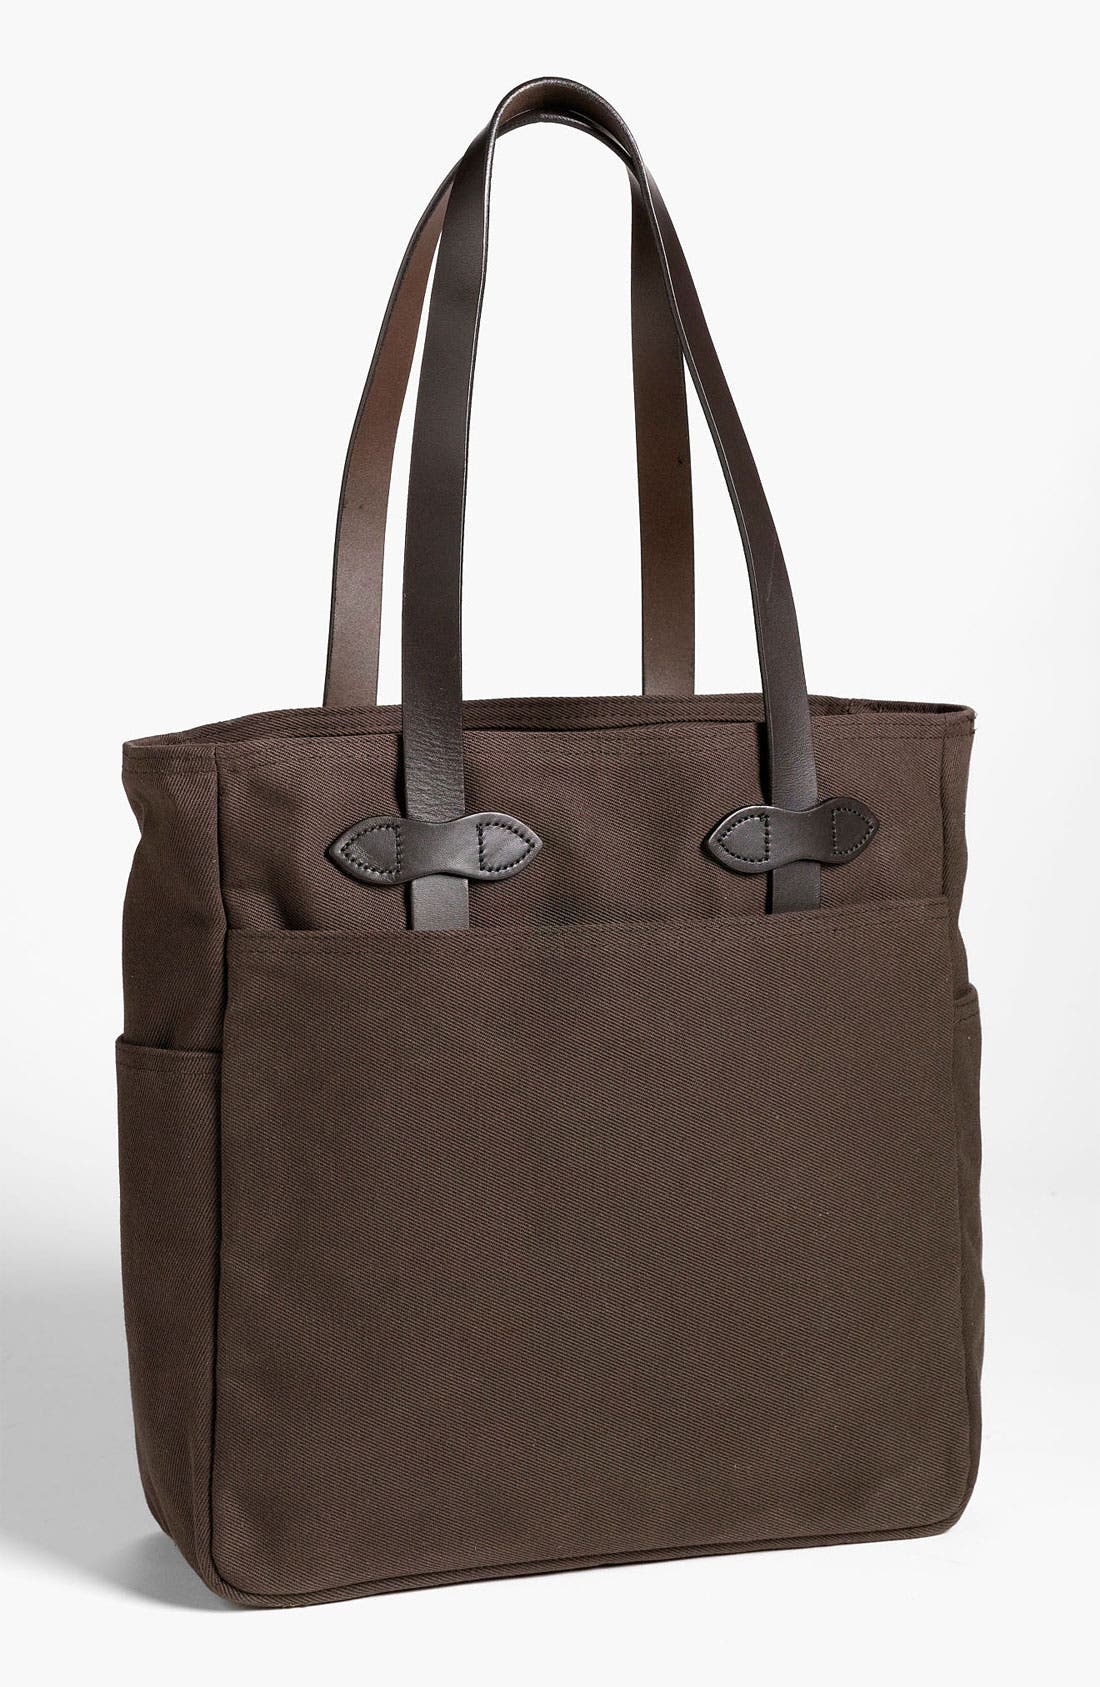 Main Image - Filson Tote Bag